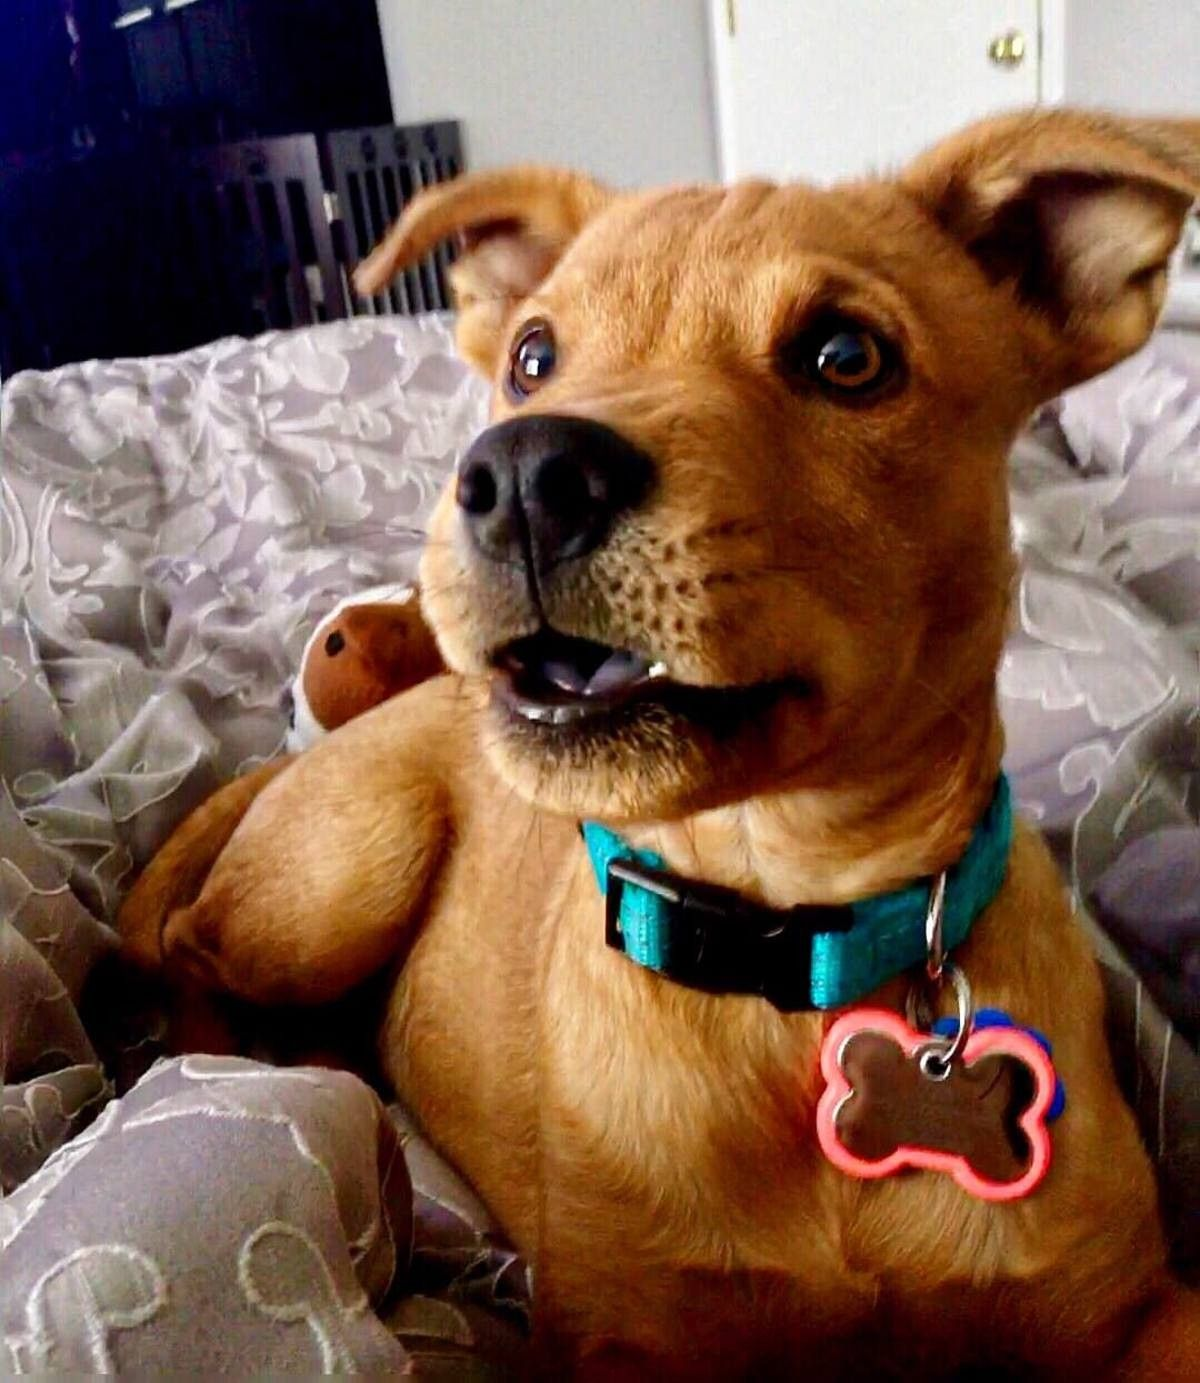 Pin by Liz on Dogs Scooby doo dog, Puppies, Cute animals